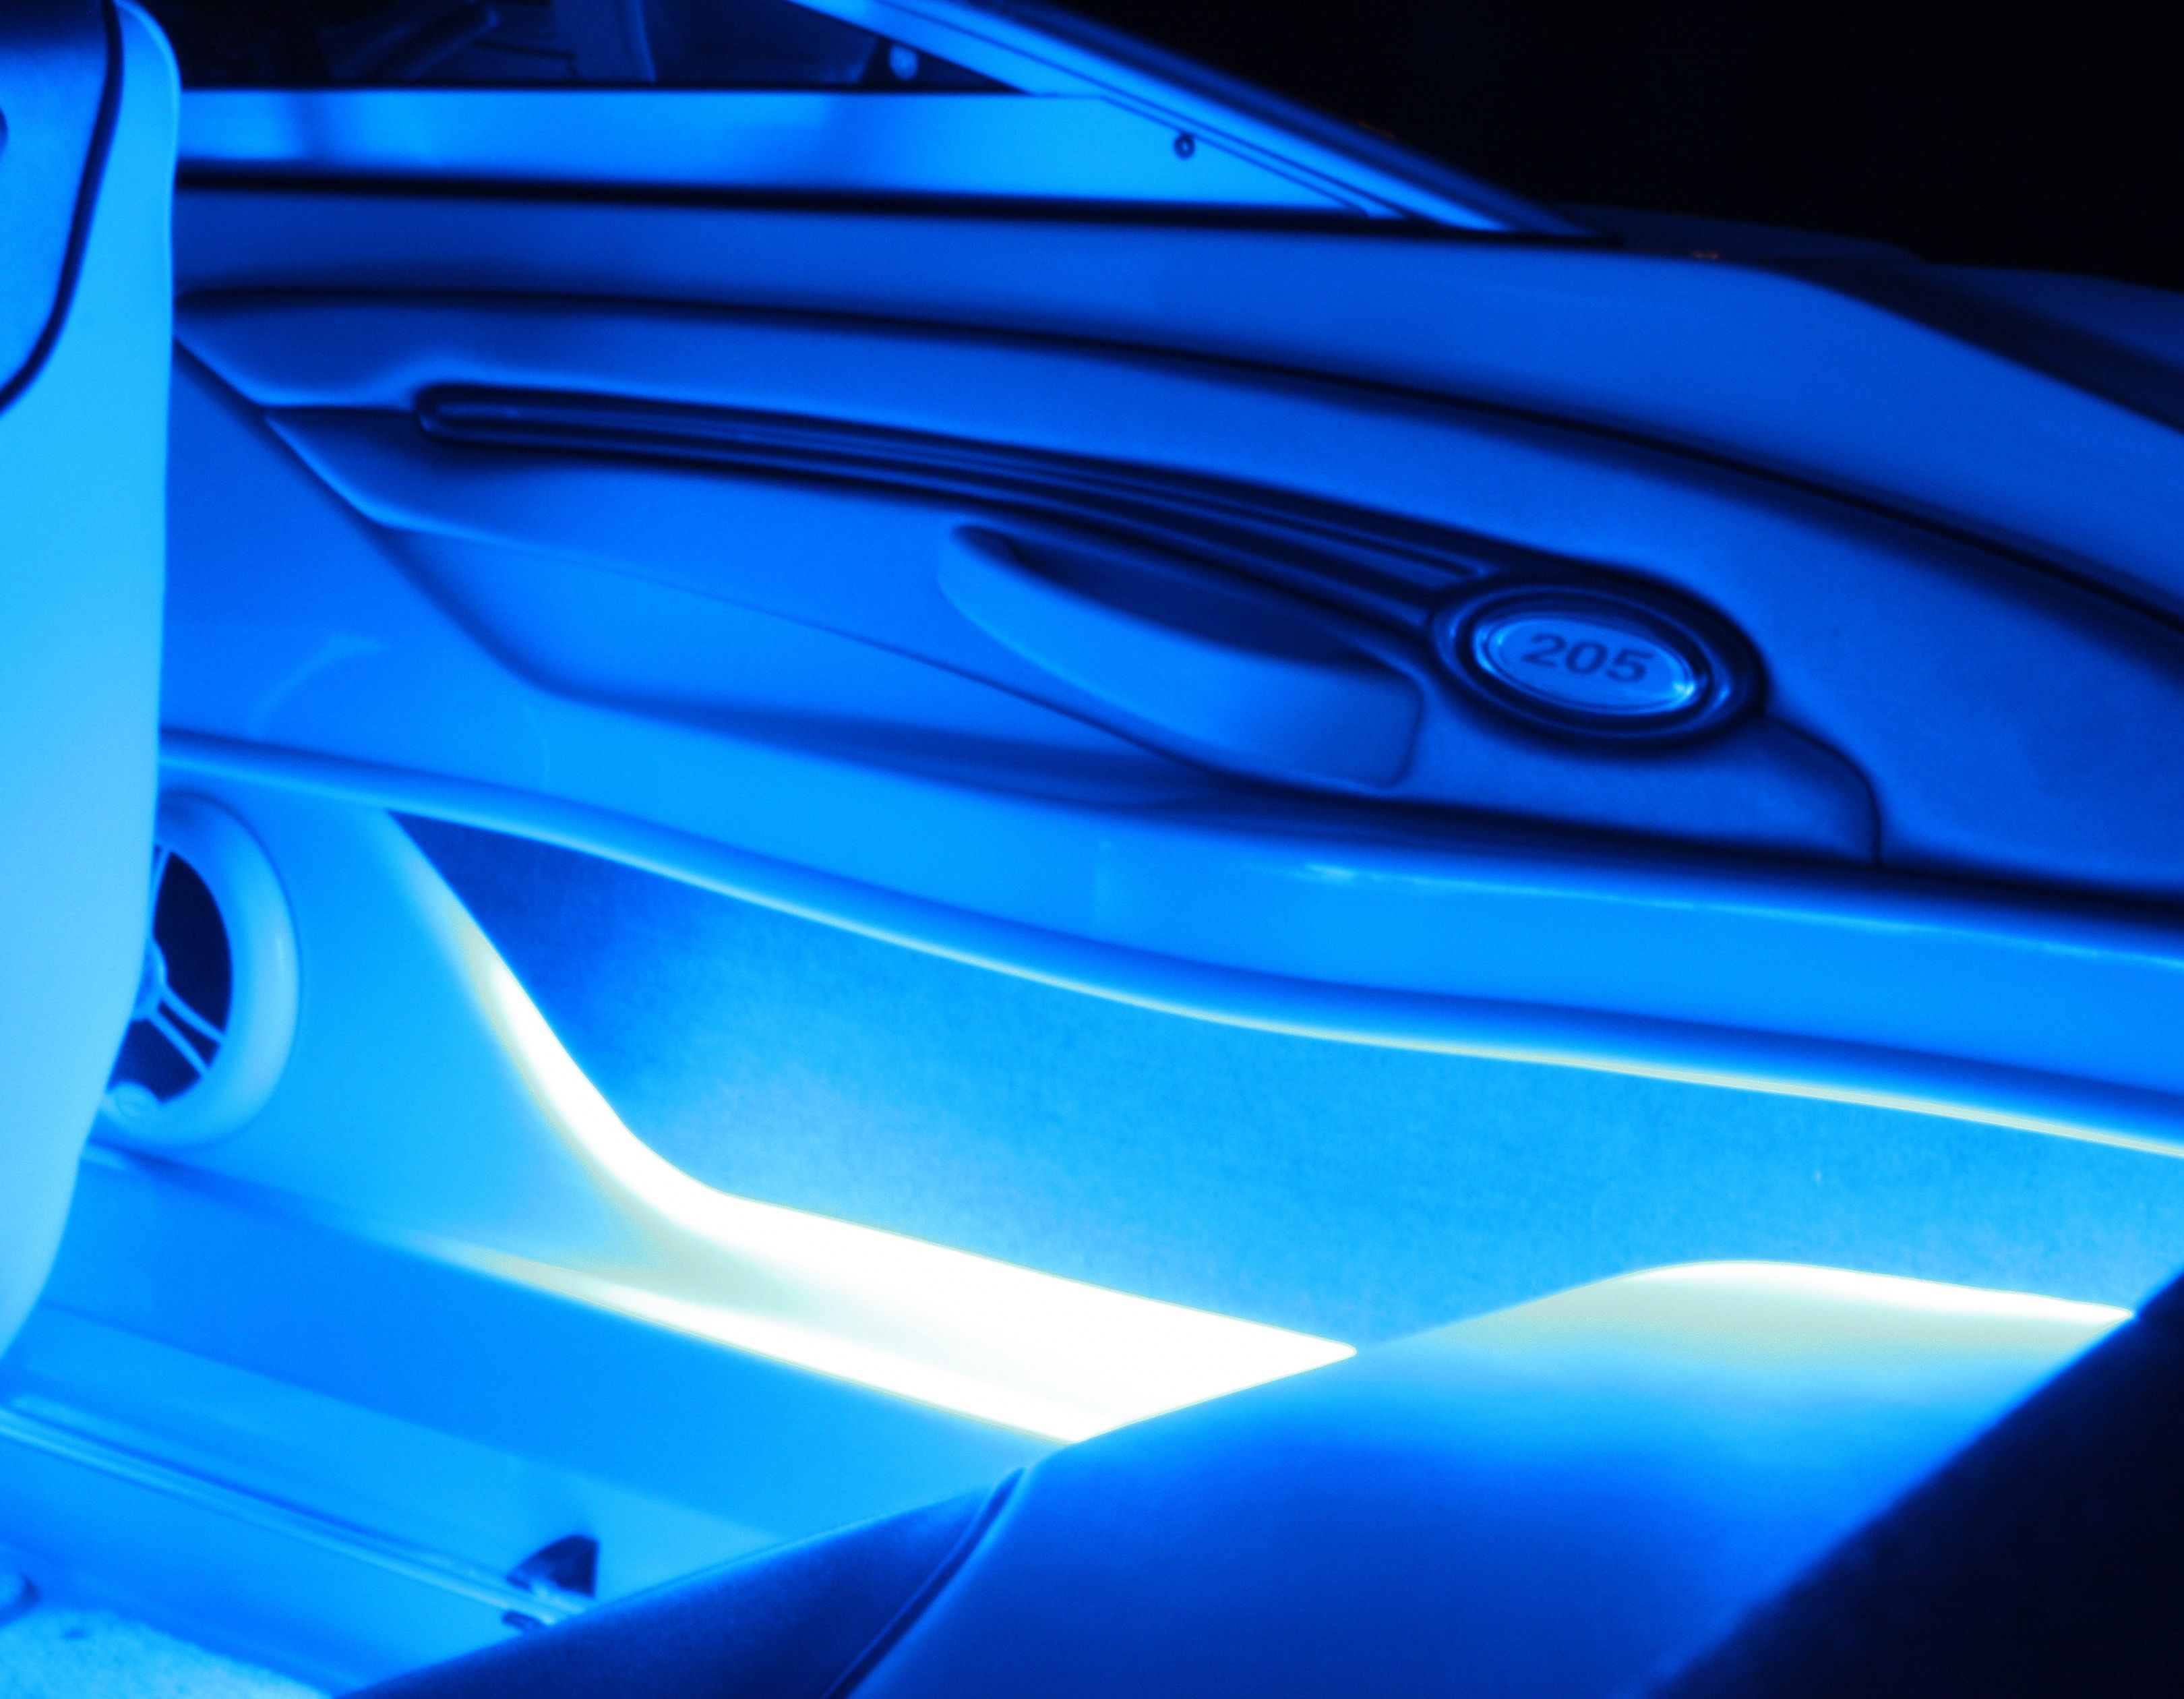 LED boats lights | Ultimate LED Boat Lighting Kits & LED boats lights | Ultimate LED Boat Lighting Kits | SS Gatsby ... azcodes.com